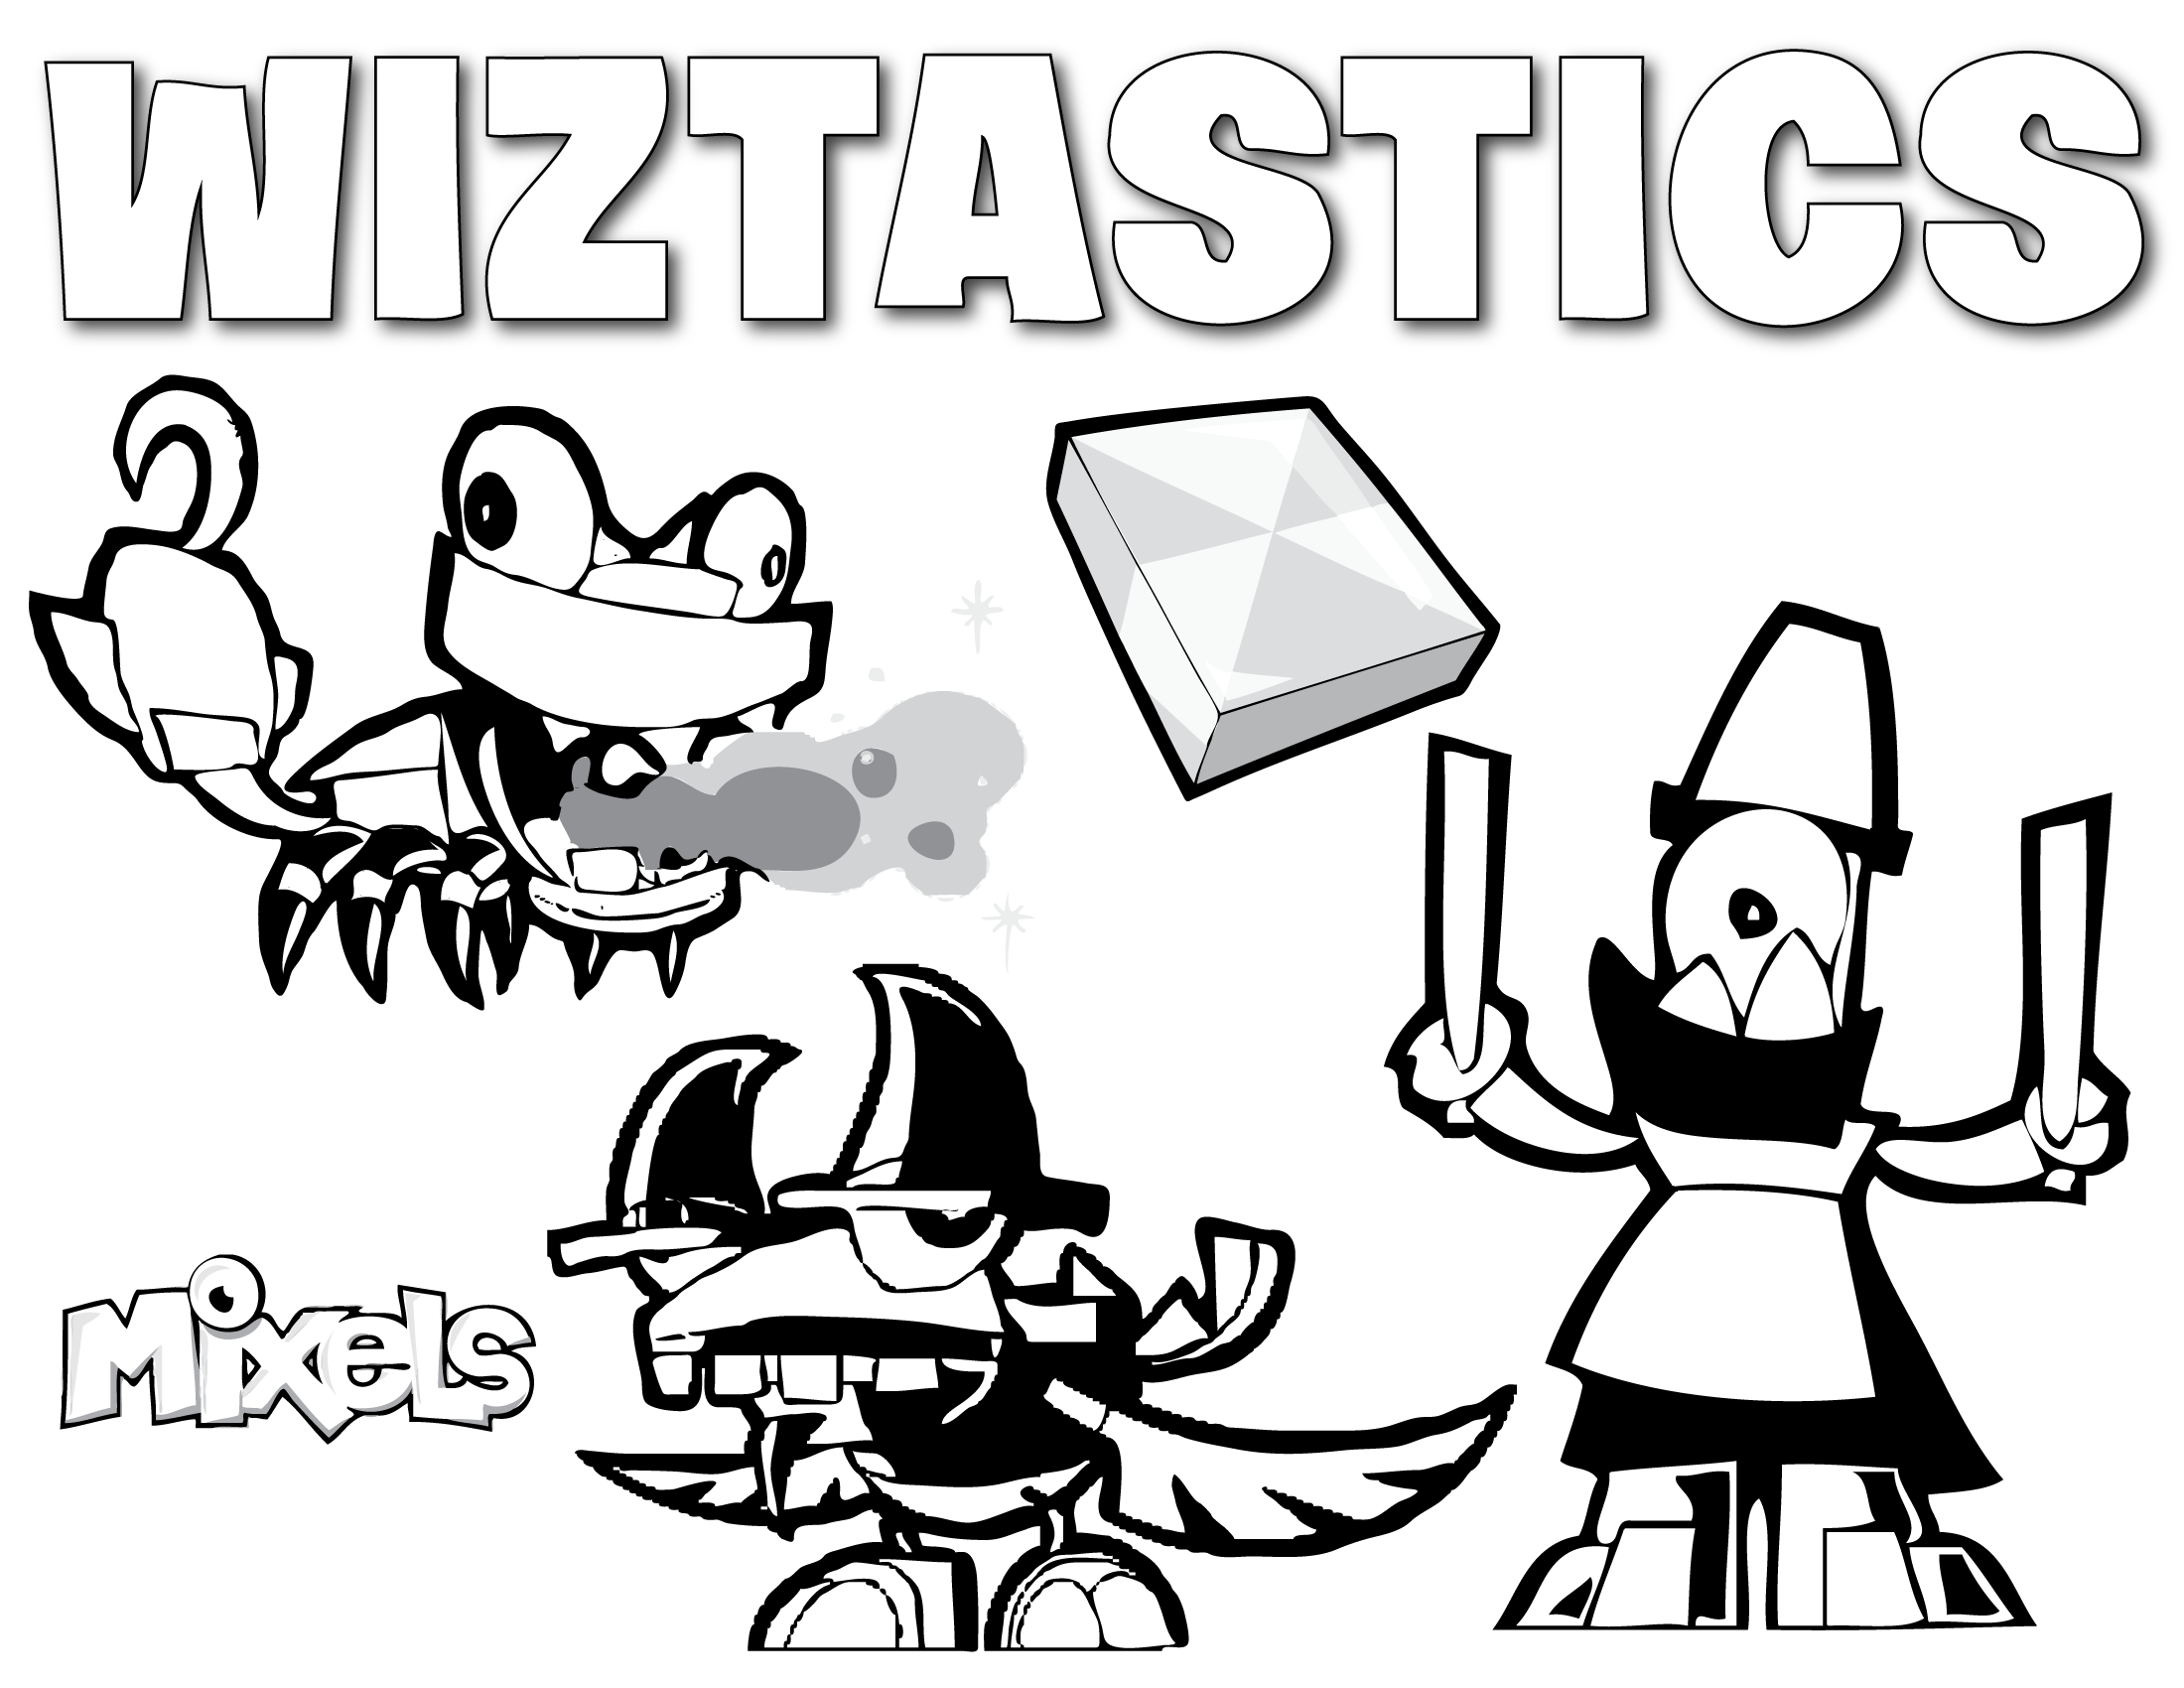 mixels coloring page for the wiztastics tribe from series 3 pdf wiztastics coloring page